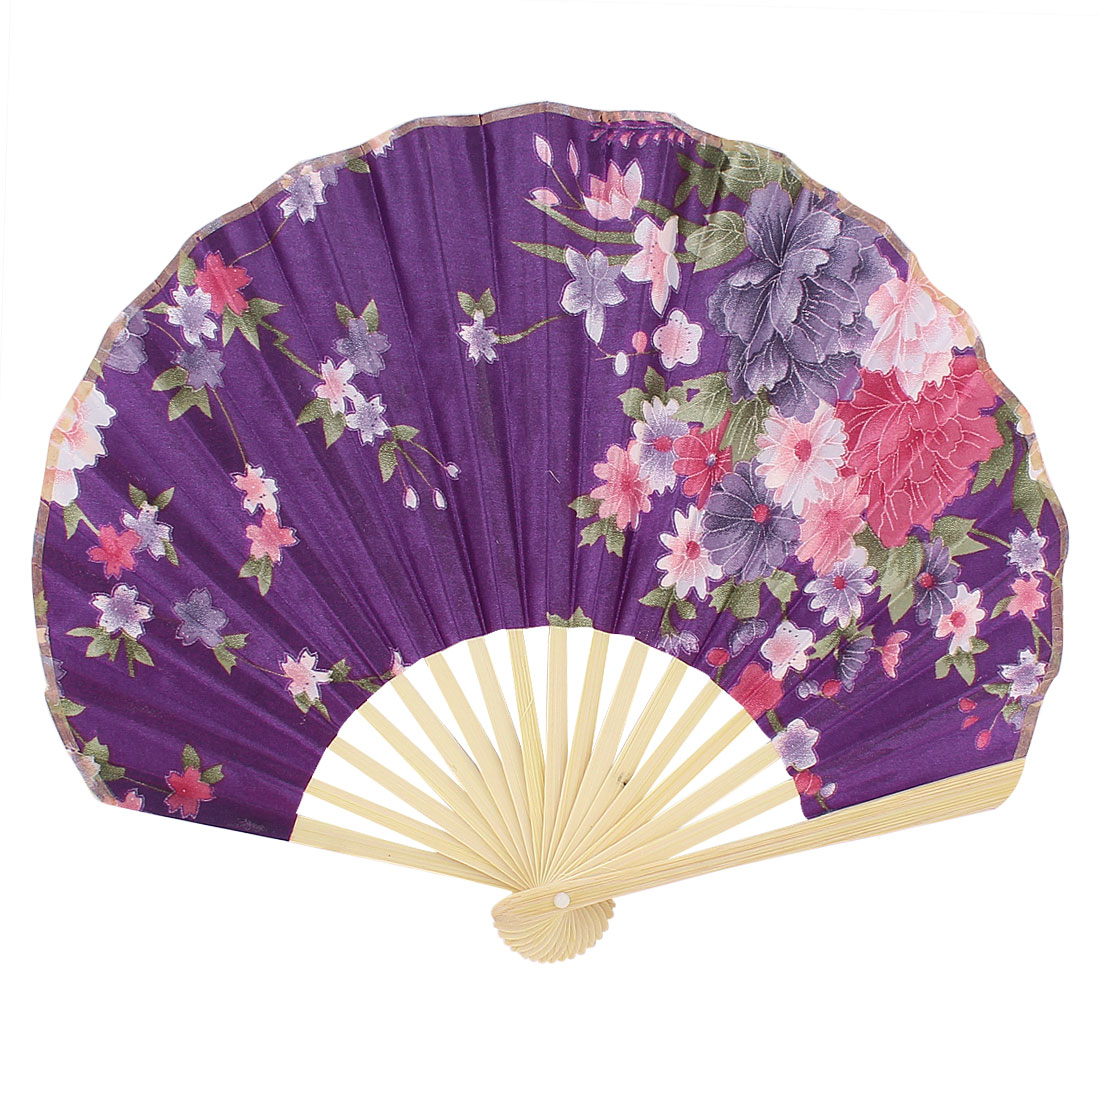 Seashell Design Floral Printed Japanese Style Foldable Hand Fan Purple